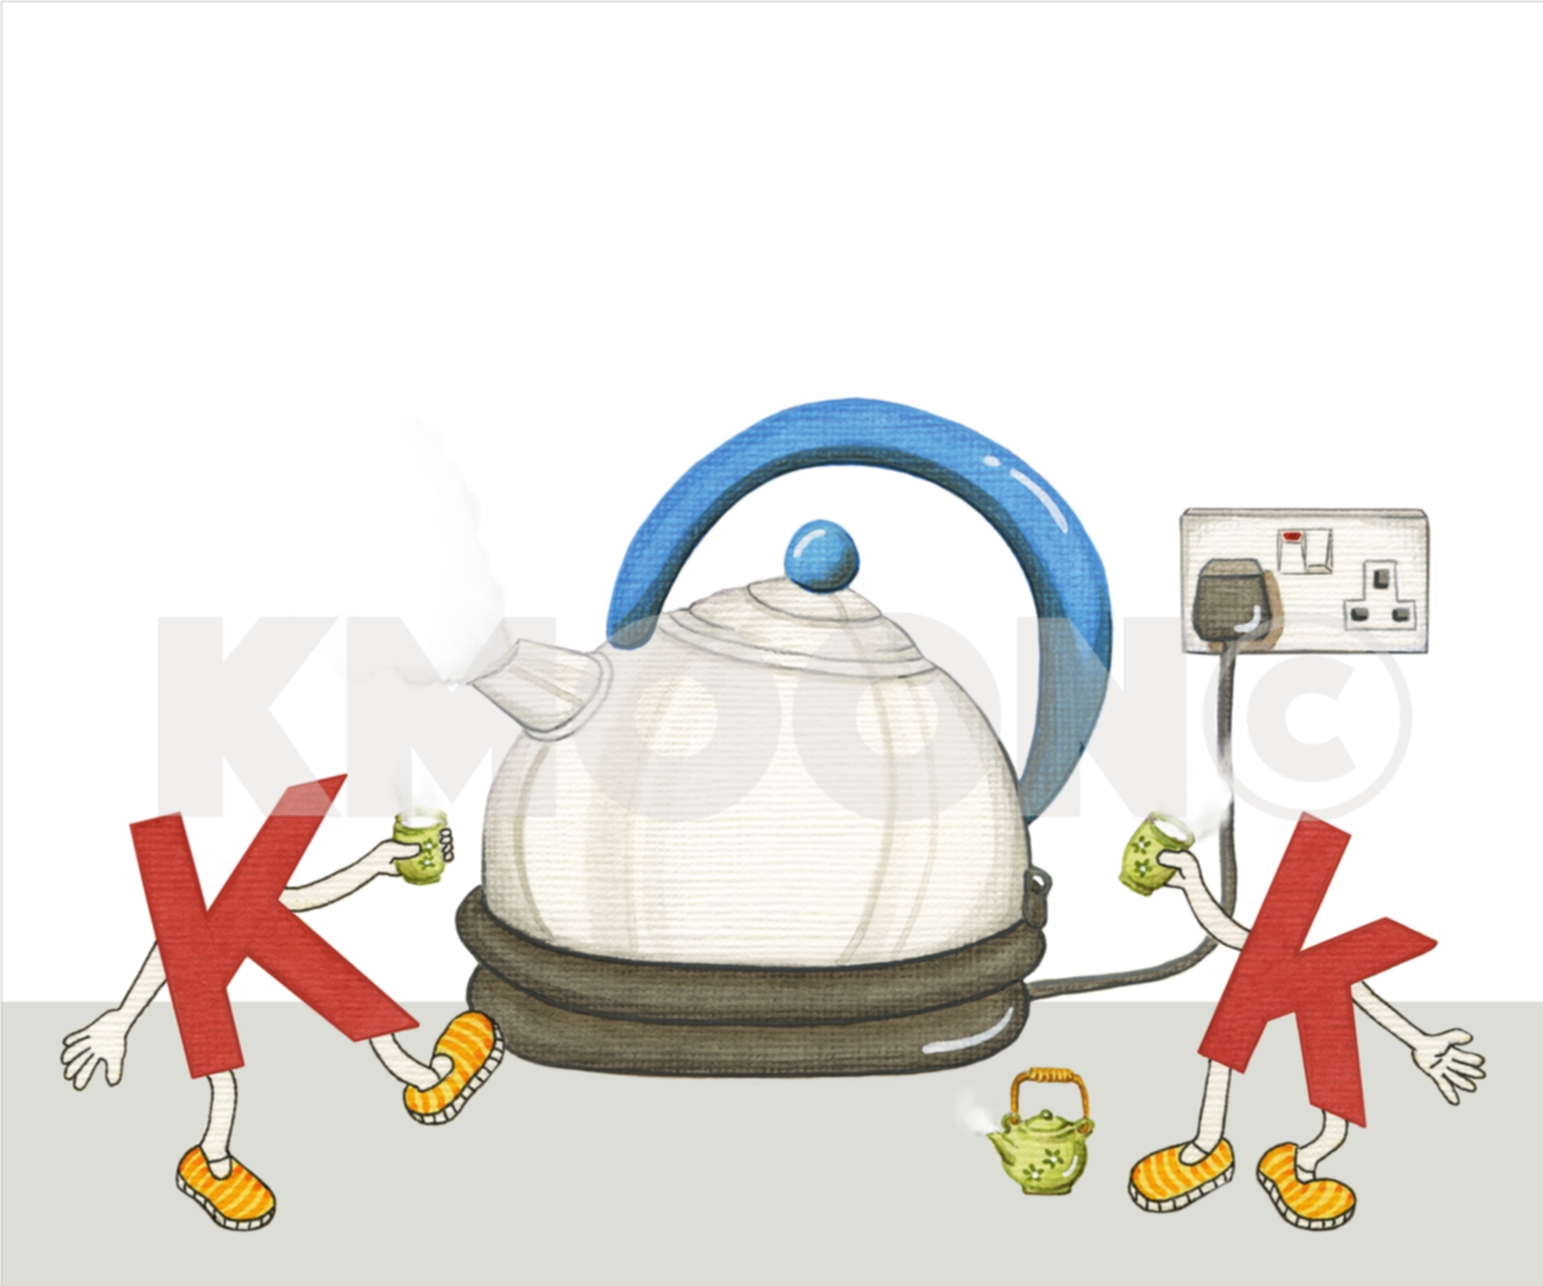 Kk is for ... kettle